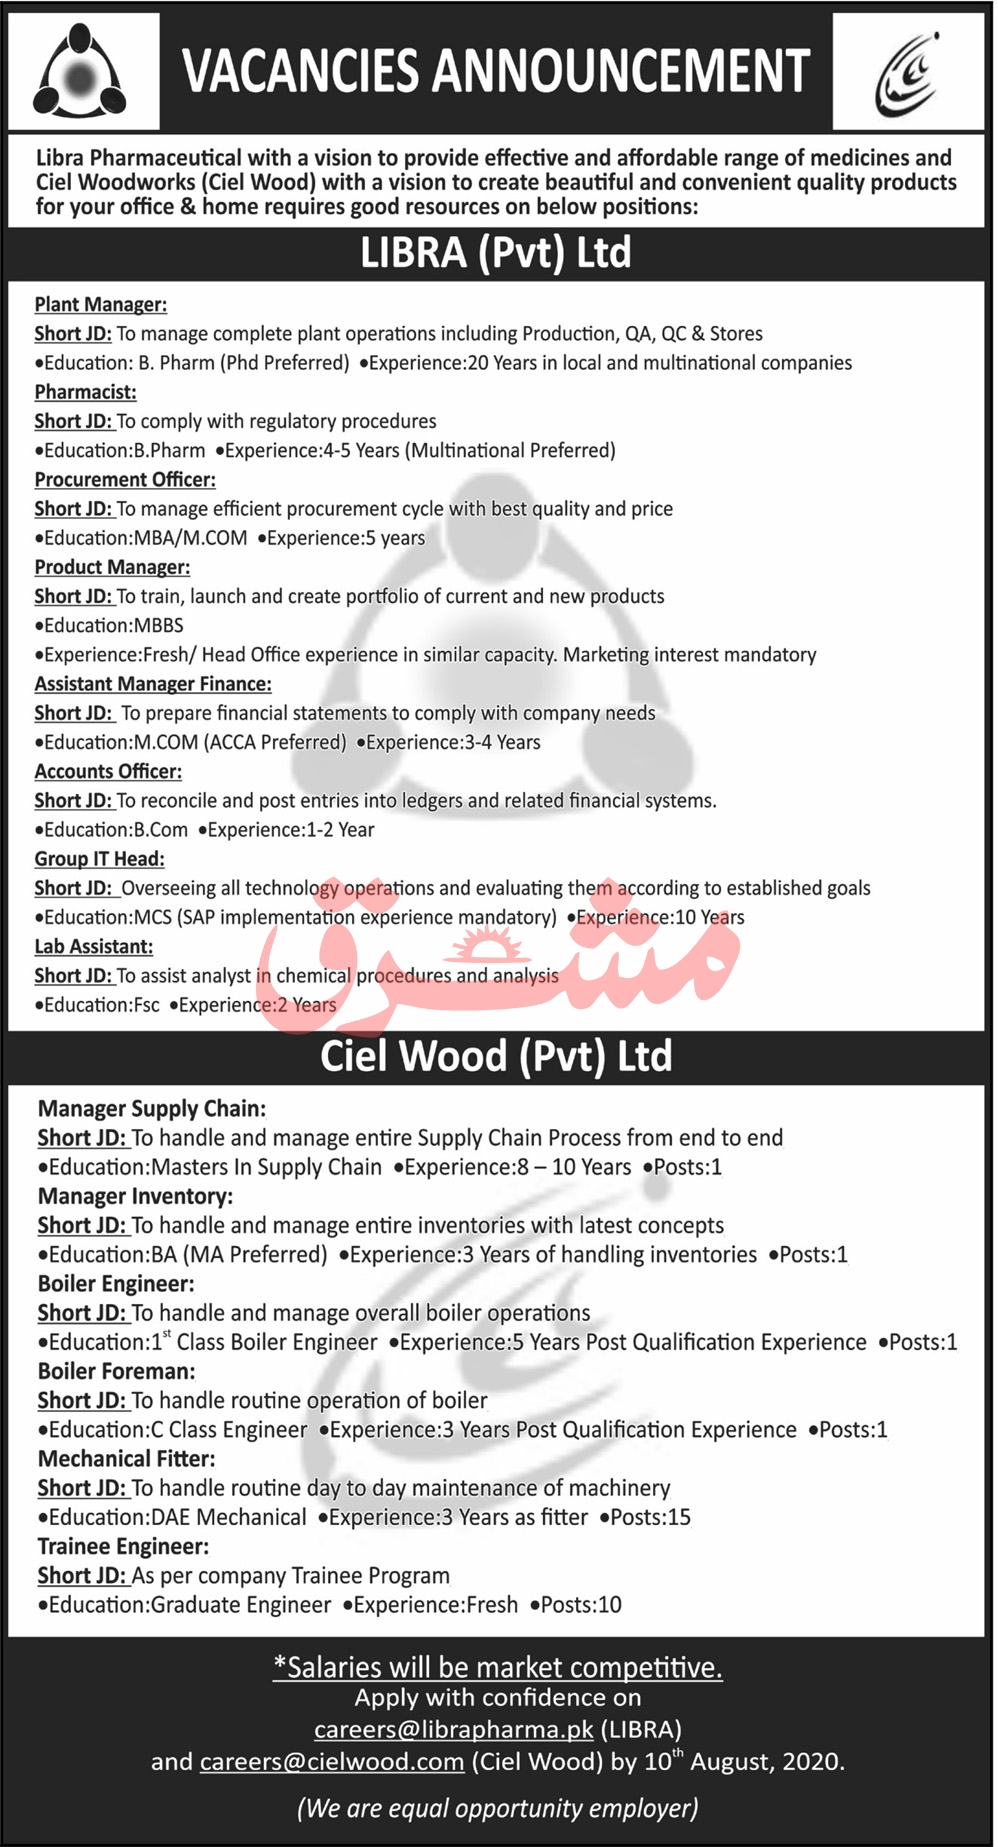 LIBRA Pvt Ltd Jobs July 2020